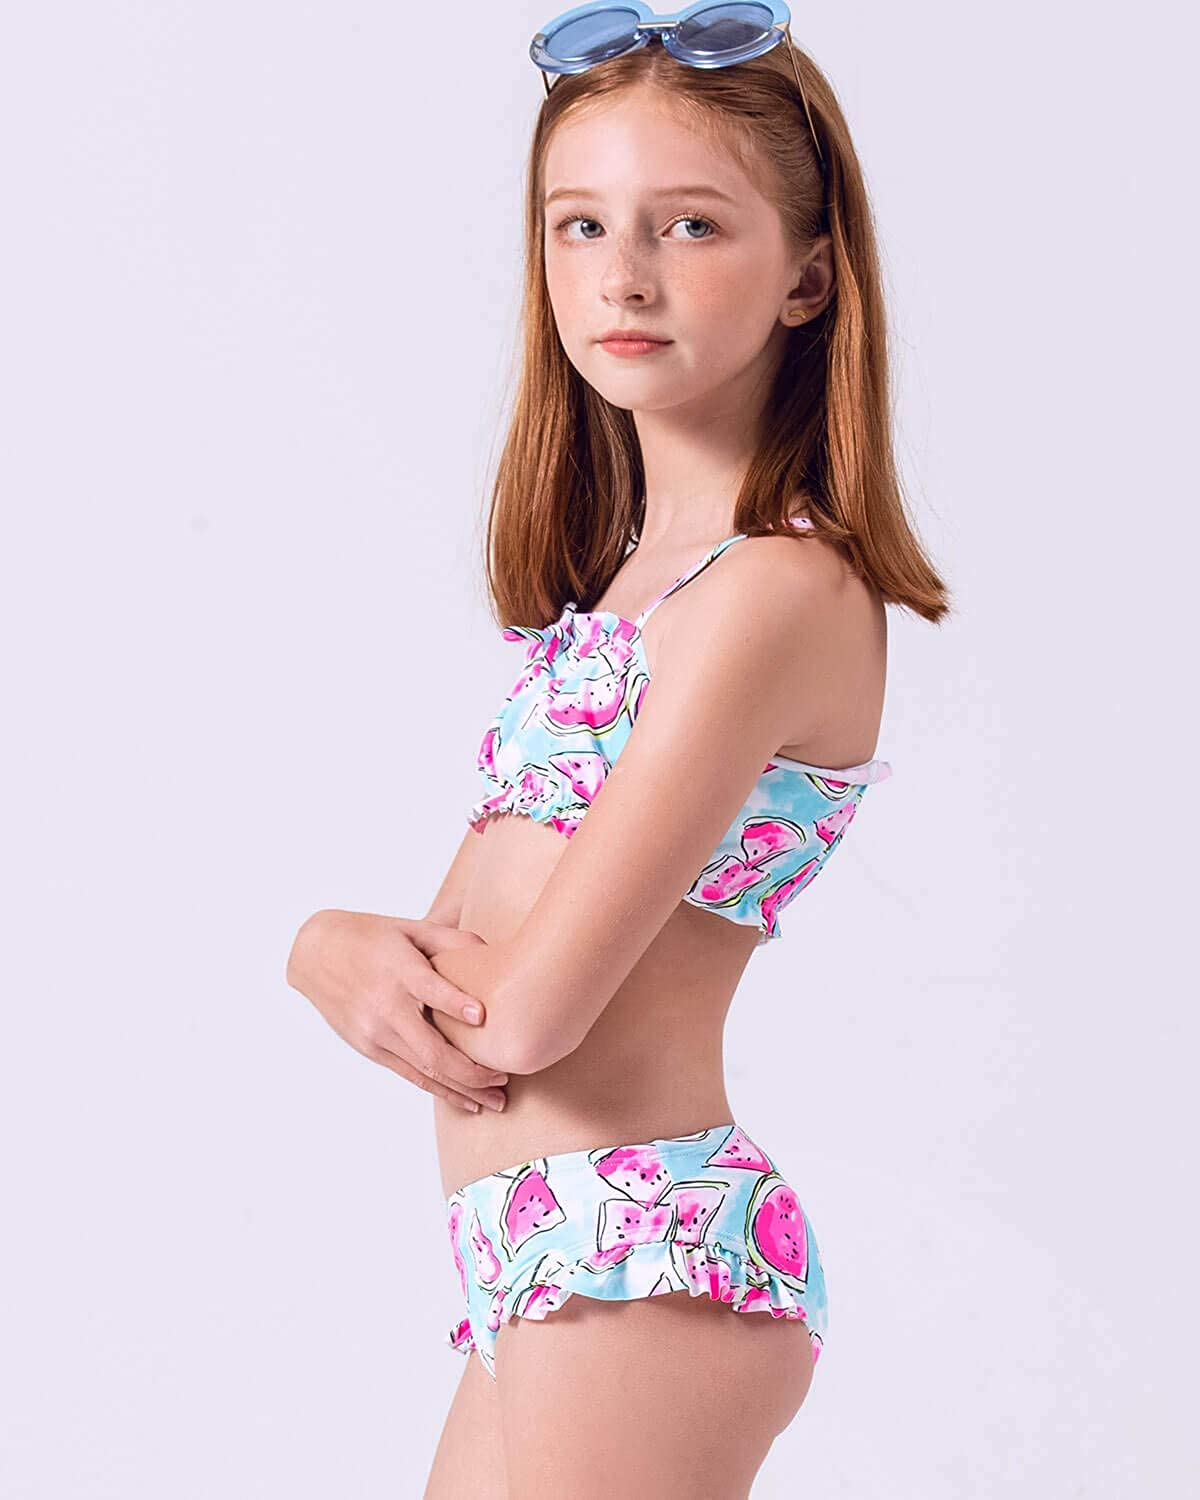 AS ROSE RICH Girls Bathing Suits 7-16 and 2T-6X Summer Beach Sports Swimsuits 2 Piece Swimsuits for Toddler Teen Girls